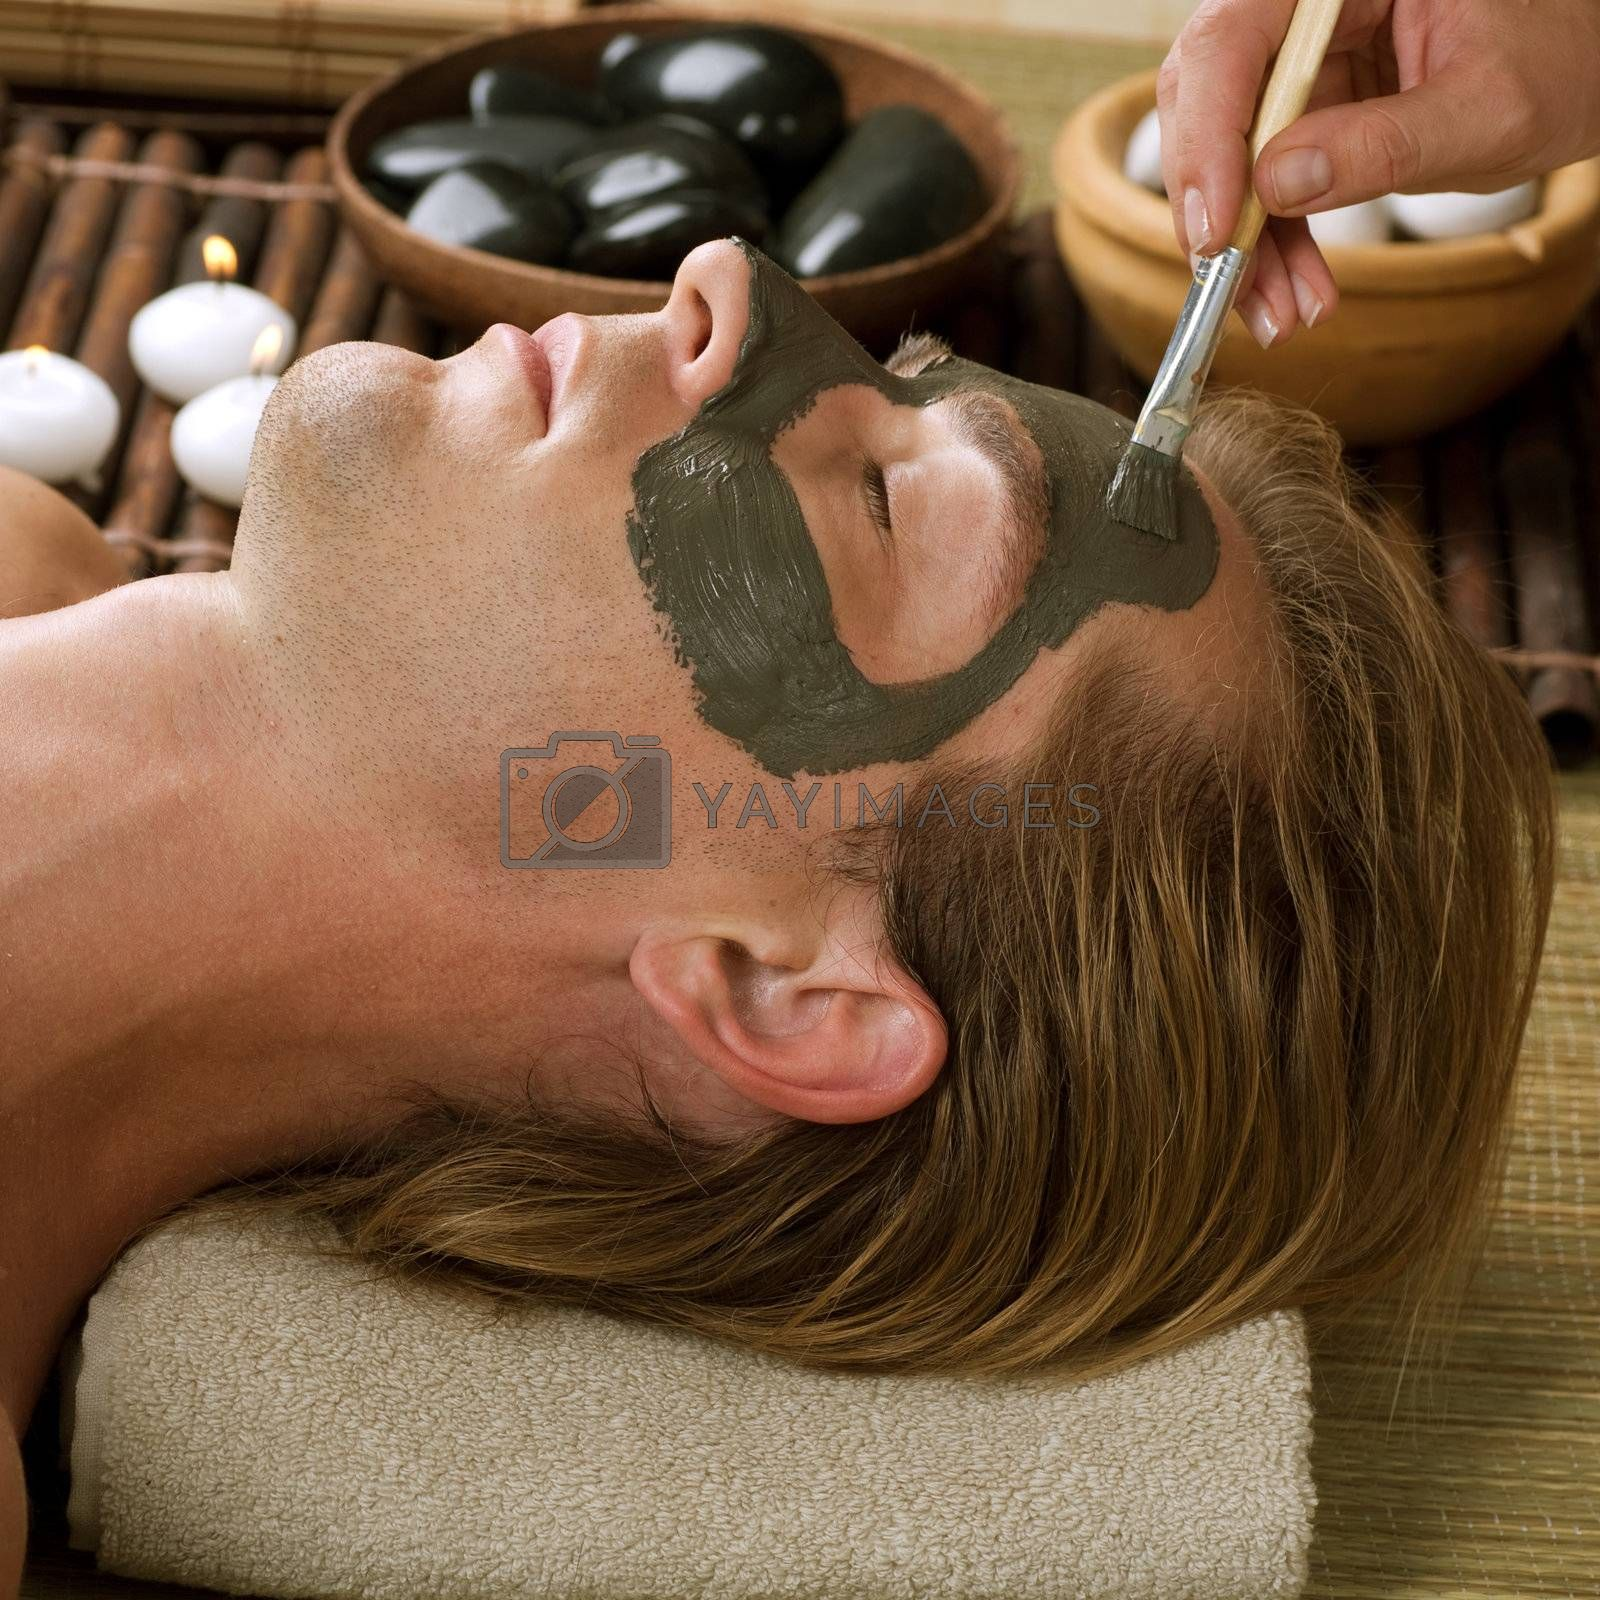 Spa. Handsome Man With A Mud Mask On His Face